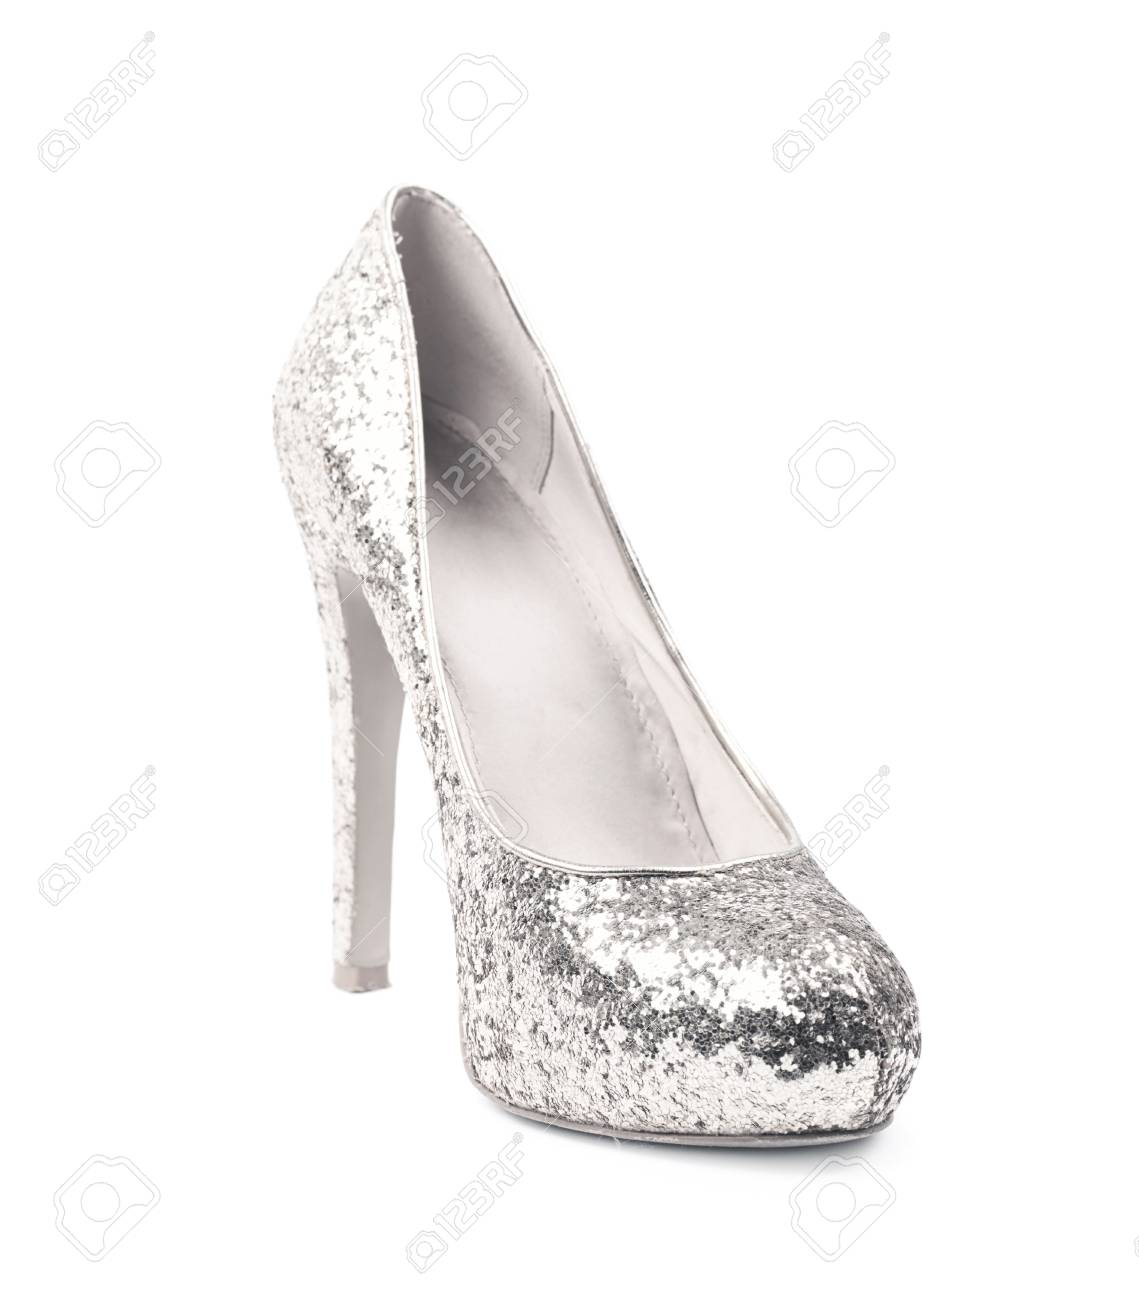 8f99fc76d59 Shining silver high-heeled footwear shoe isolated over the white background  Stock Photo - 61838113